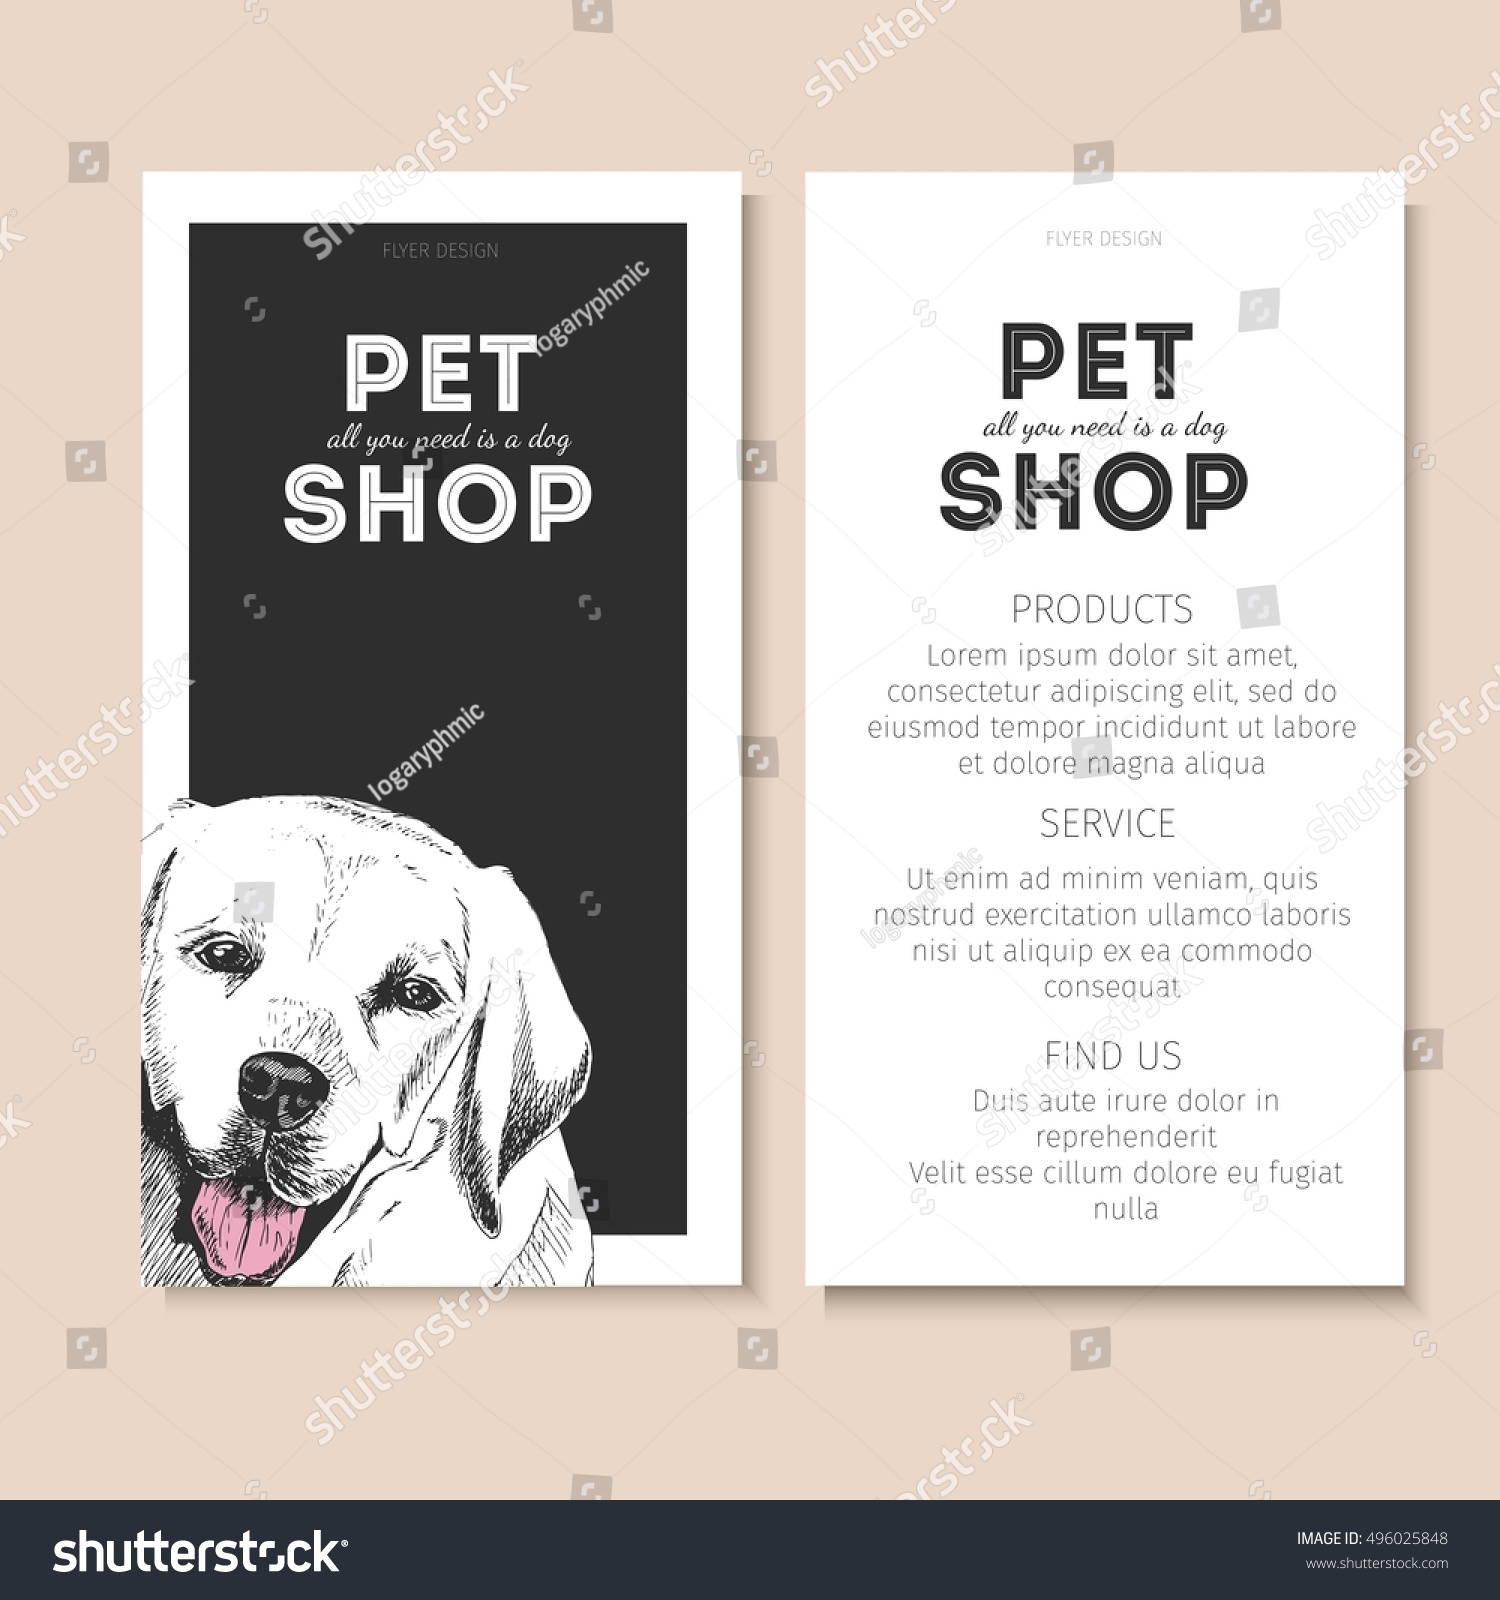 Vector Set Pet Shop Flyers Dog Stock Vector 496025848 - Shutterstock